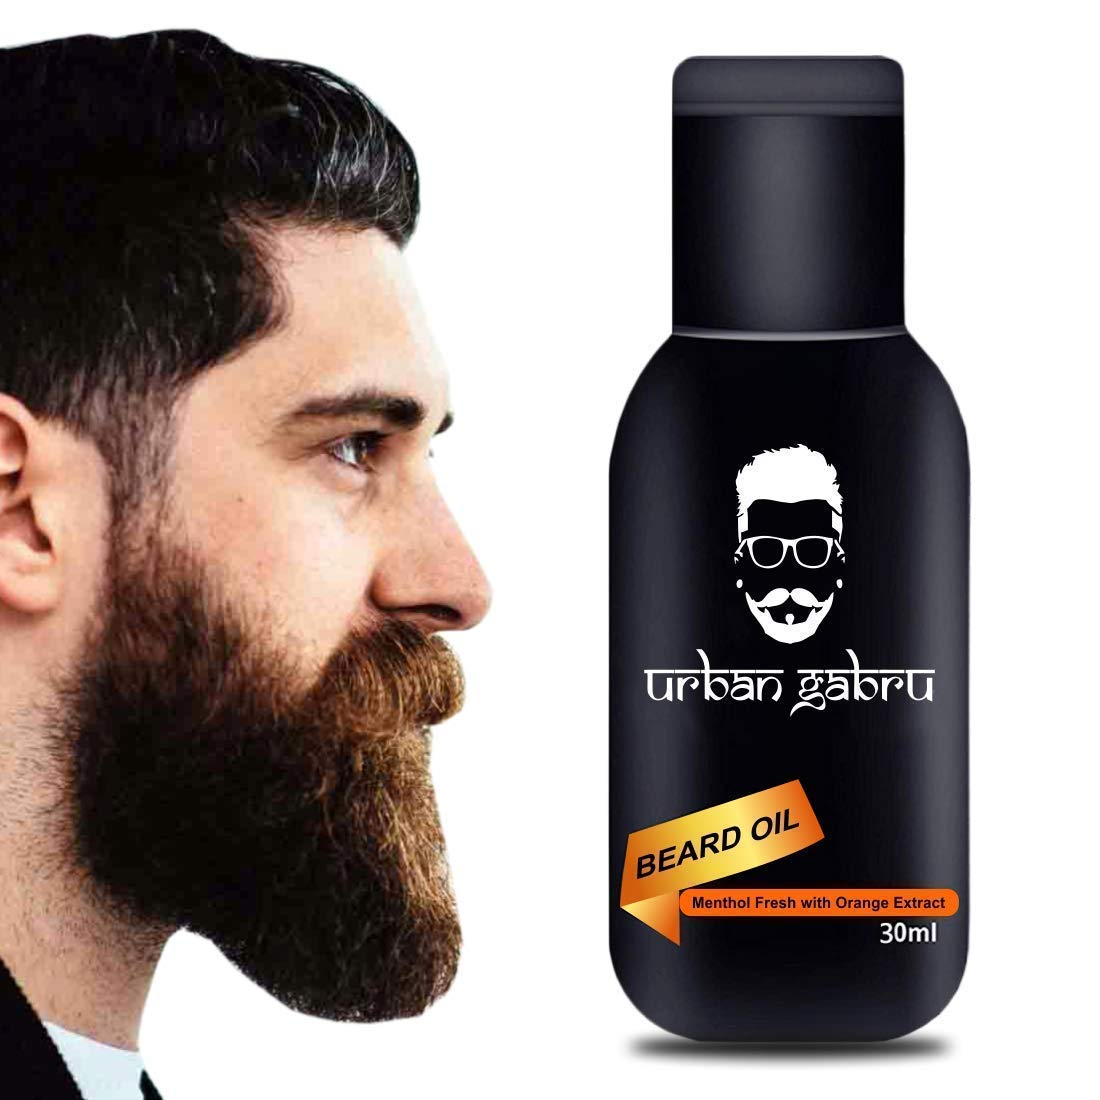 urban-gabru-best-beard-oil-india-pic